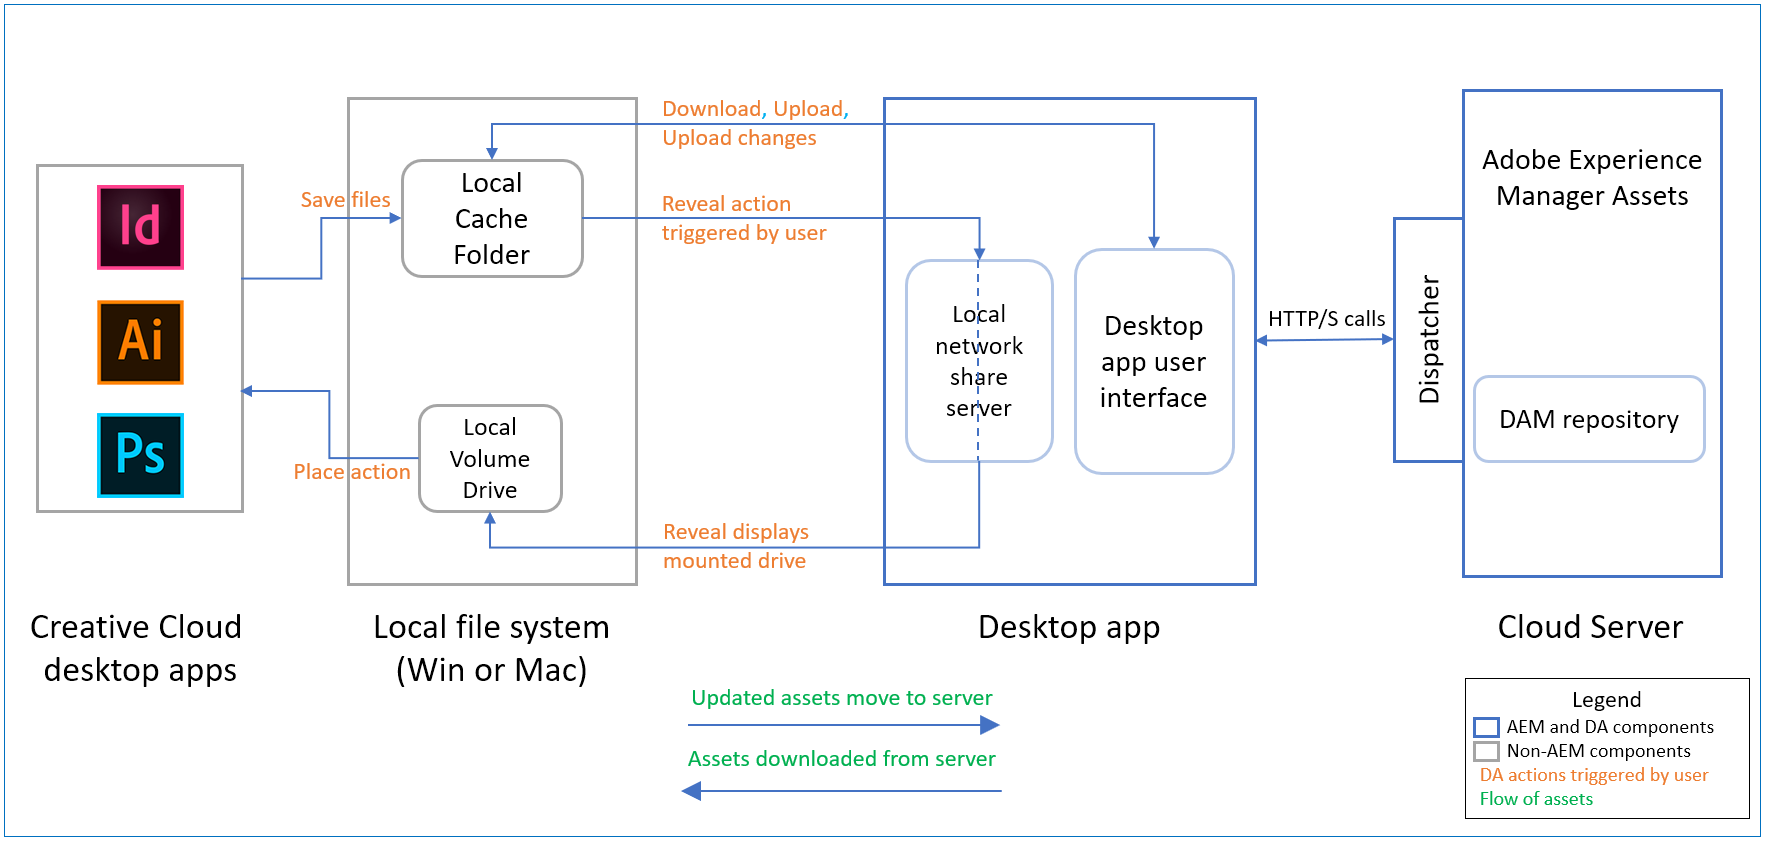 Flow of assets from Experience Manager server to native desktop apps via desktop app